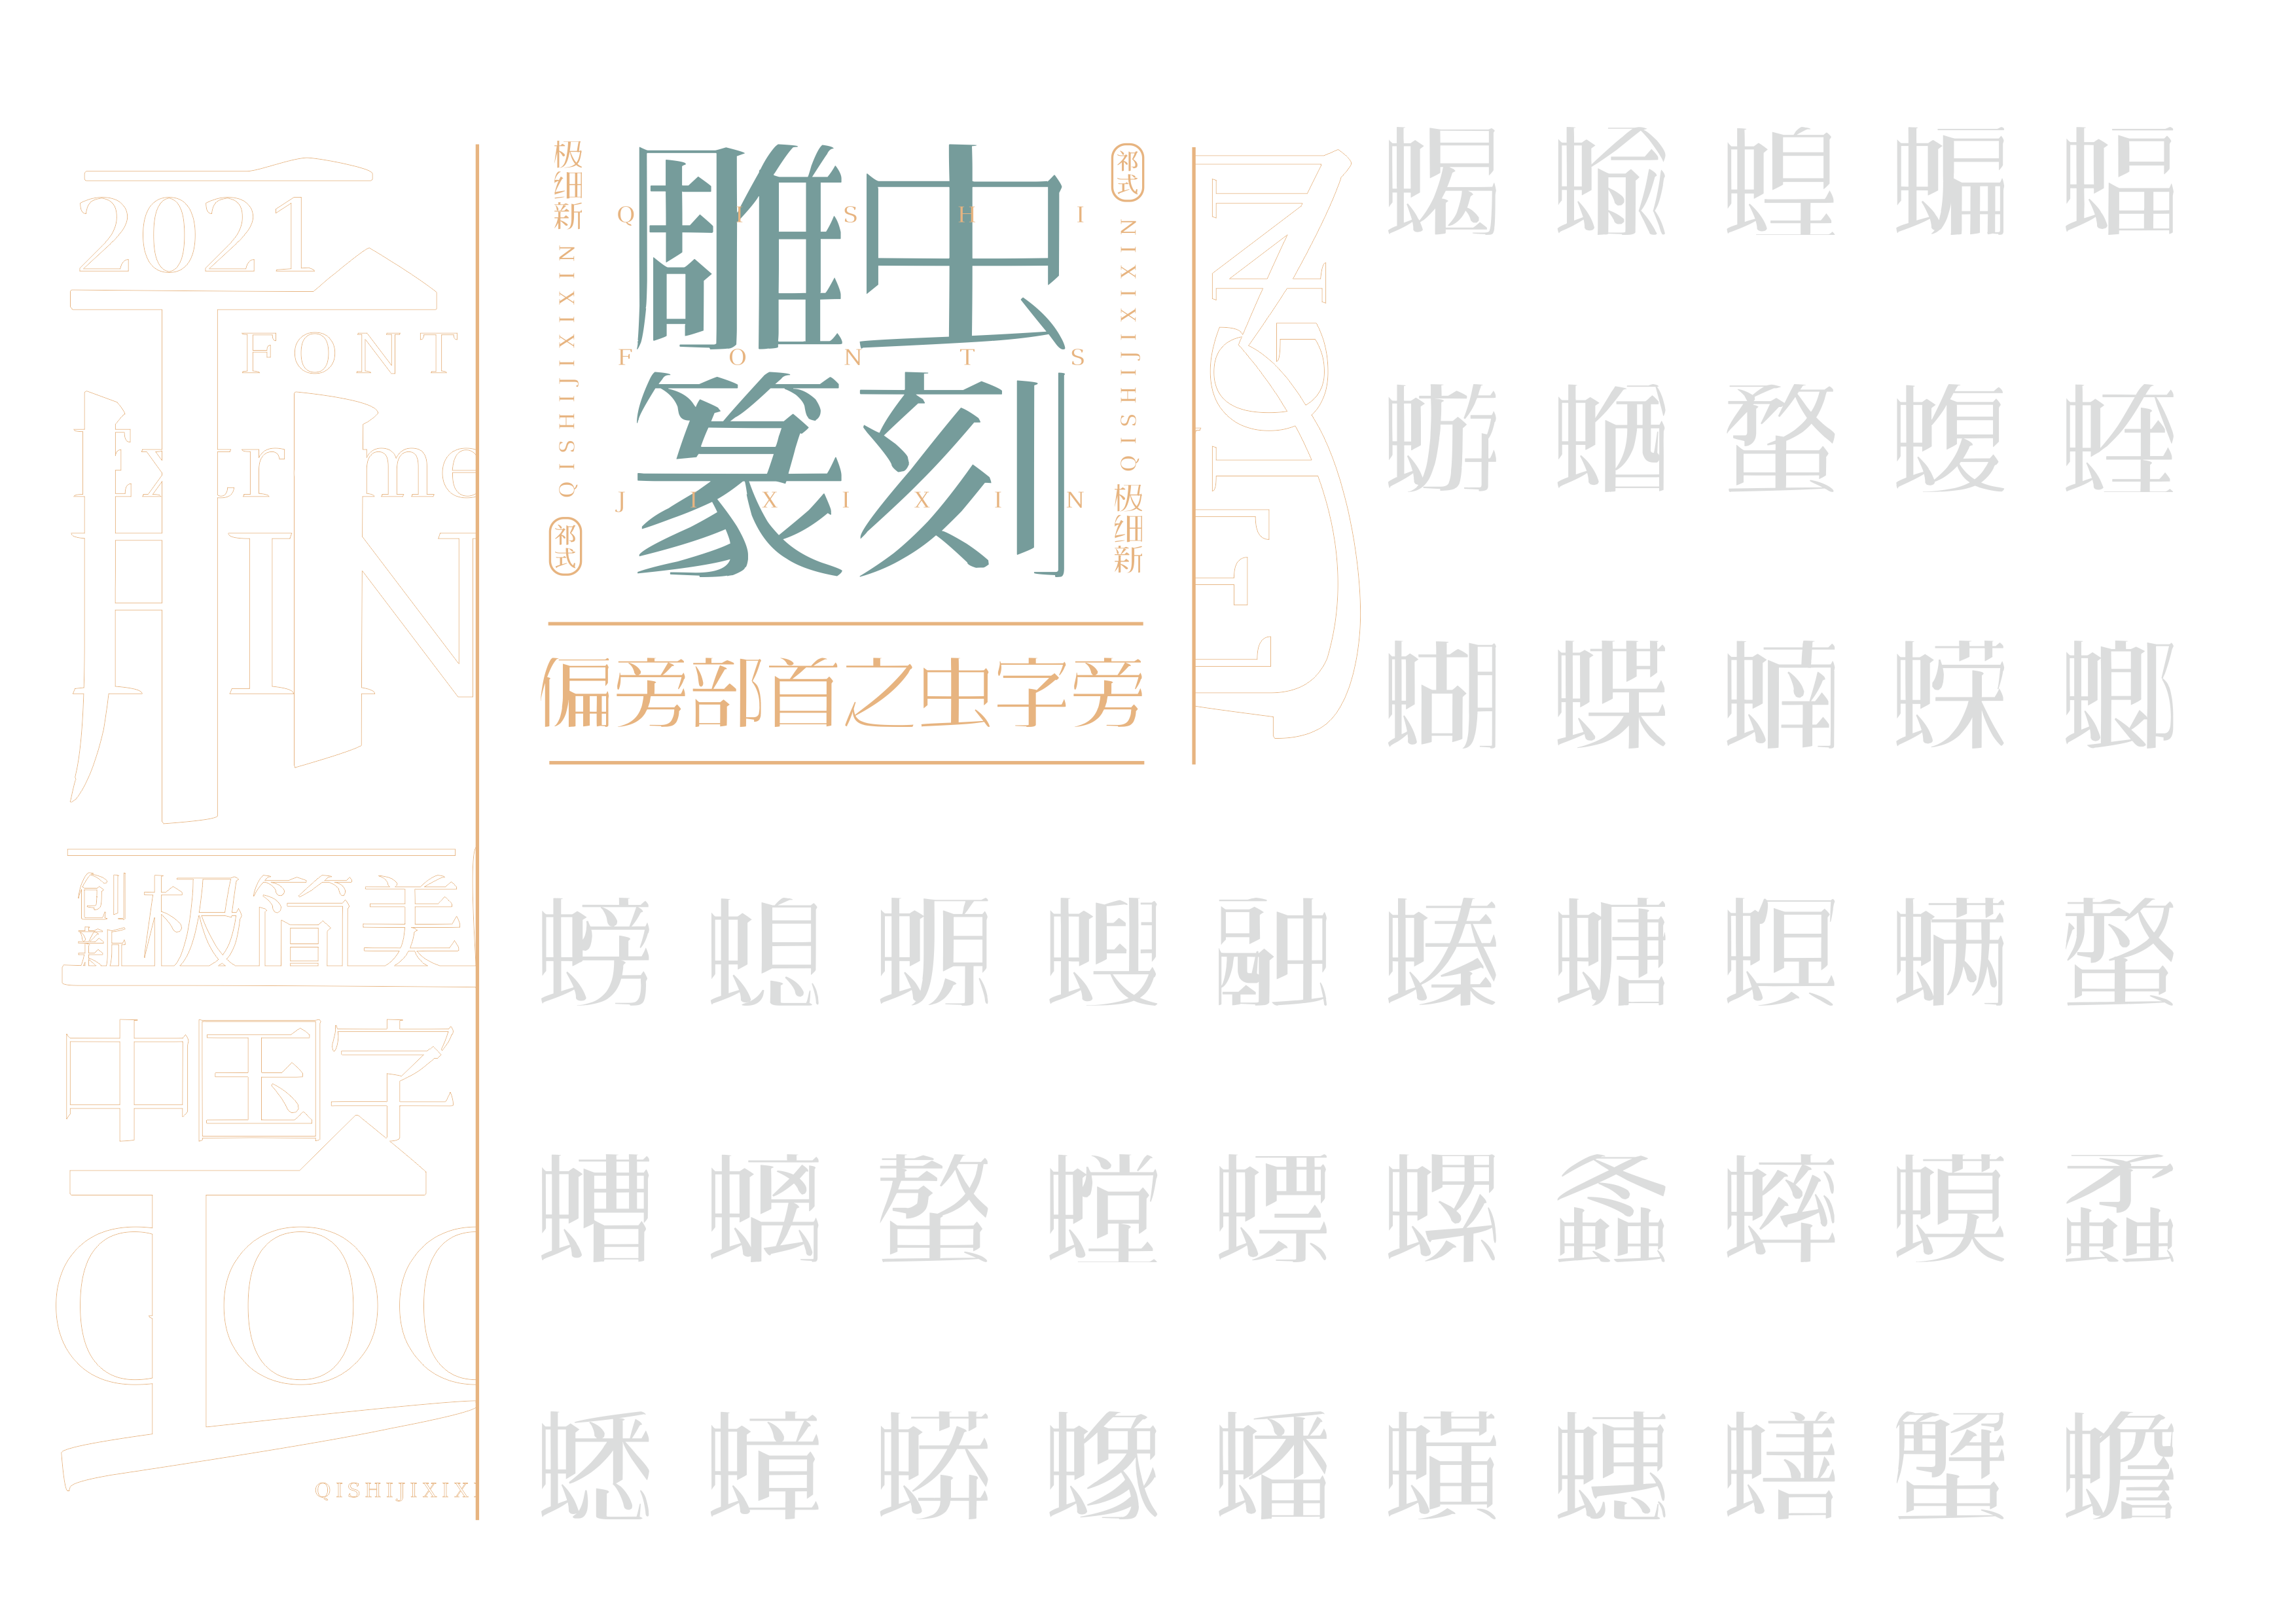 76P Collection of the latest Chinese font design schemes in 2021 #.144